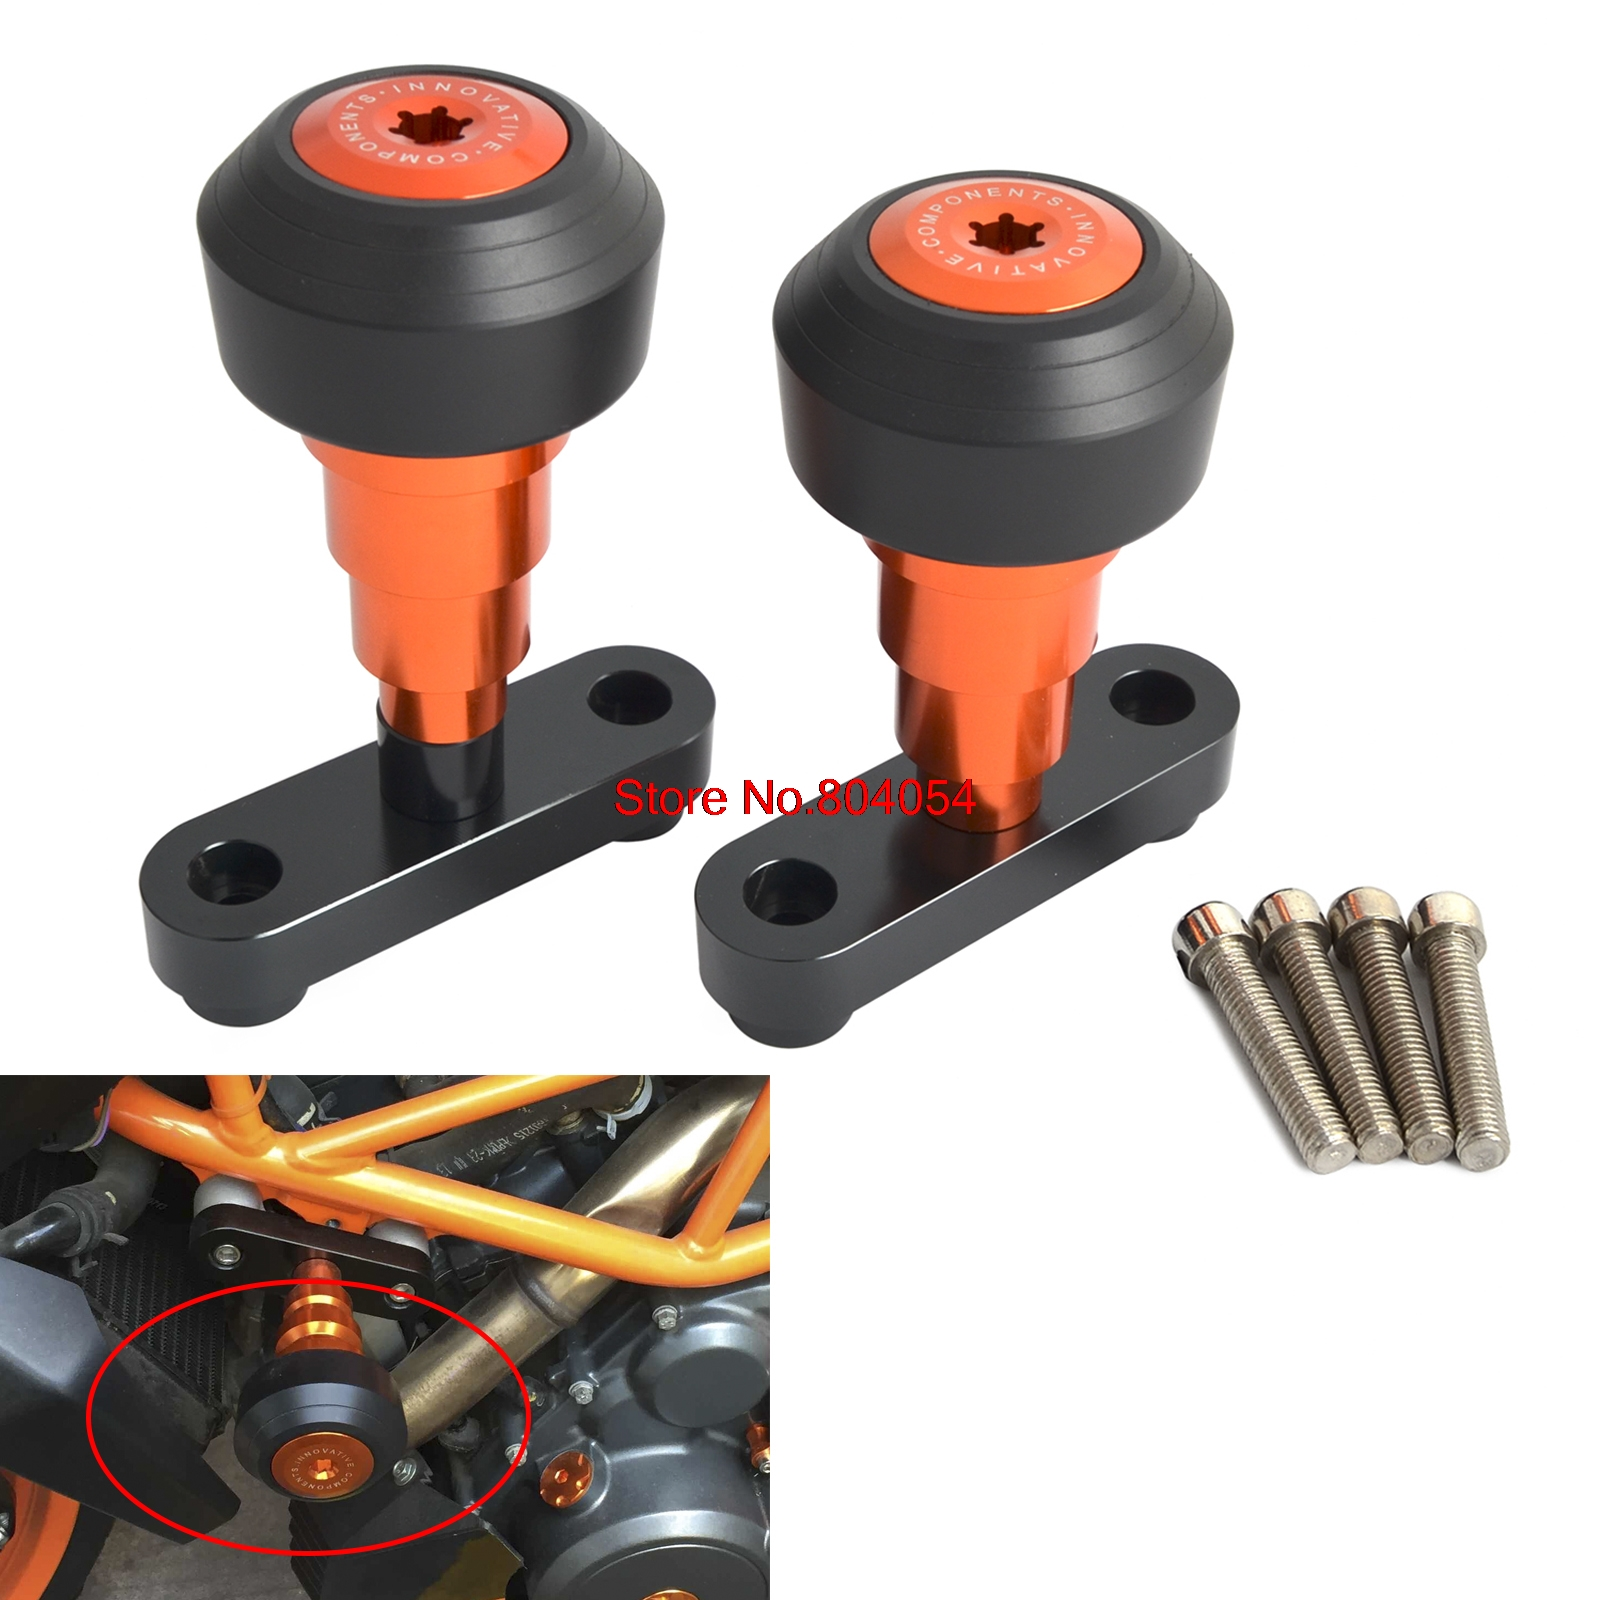 Motorcycle Parts Frame Sliders Sturzpad Crashpads For KTM Duke 125 200 390 2011 - 2016 2012 2013 2014 2015 New for ktm 200 duke 2013 2014 390 duke 2014 2015 2016 motorcycle accessories steering damper stabilizer with mounting bracket kit